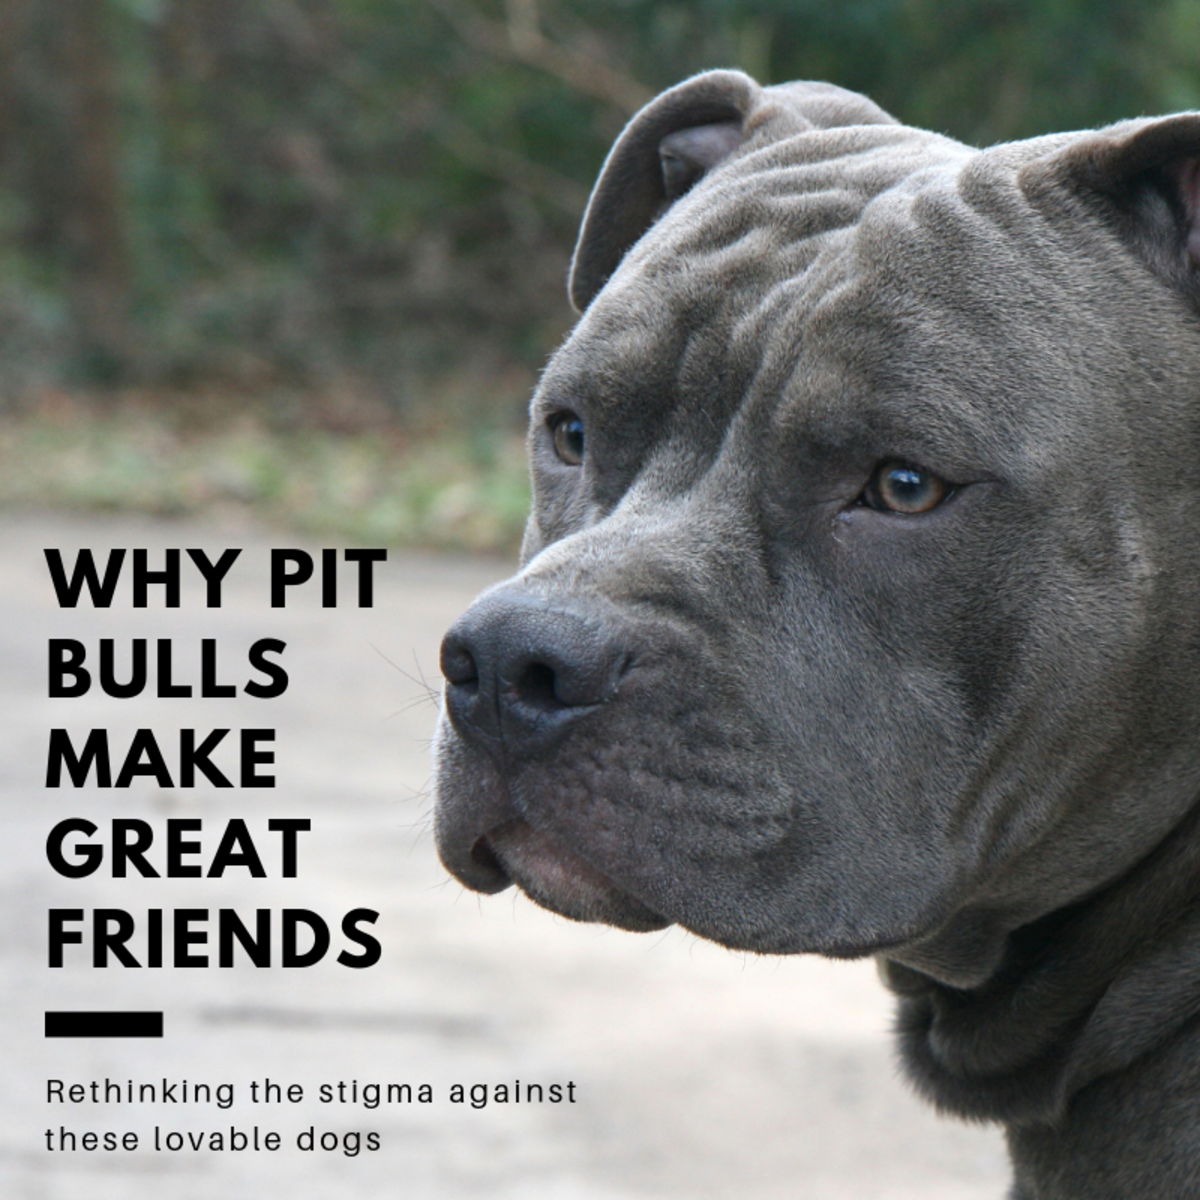 Not All Pit Bulls Are Dangerous: Why They Deserve a Second Chance